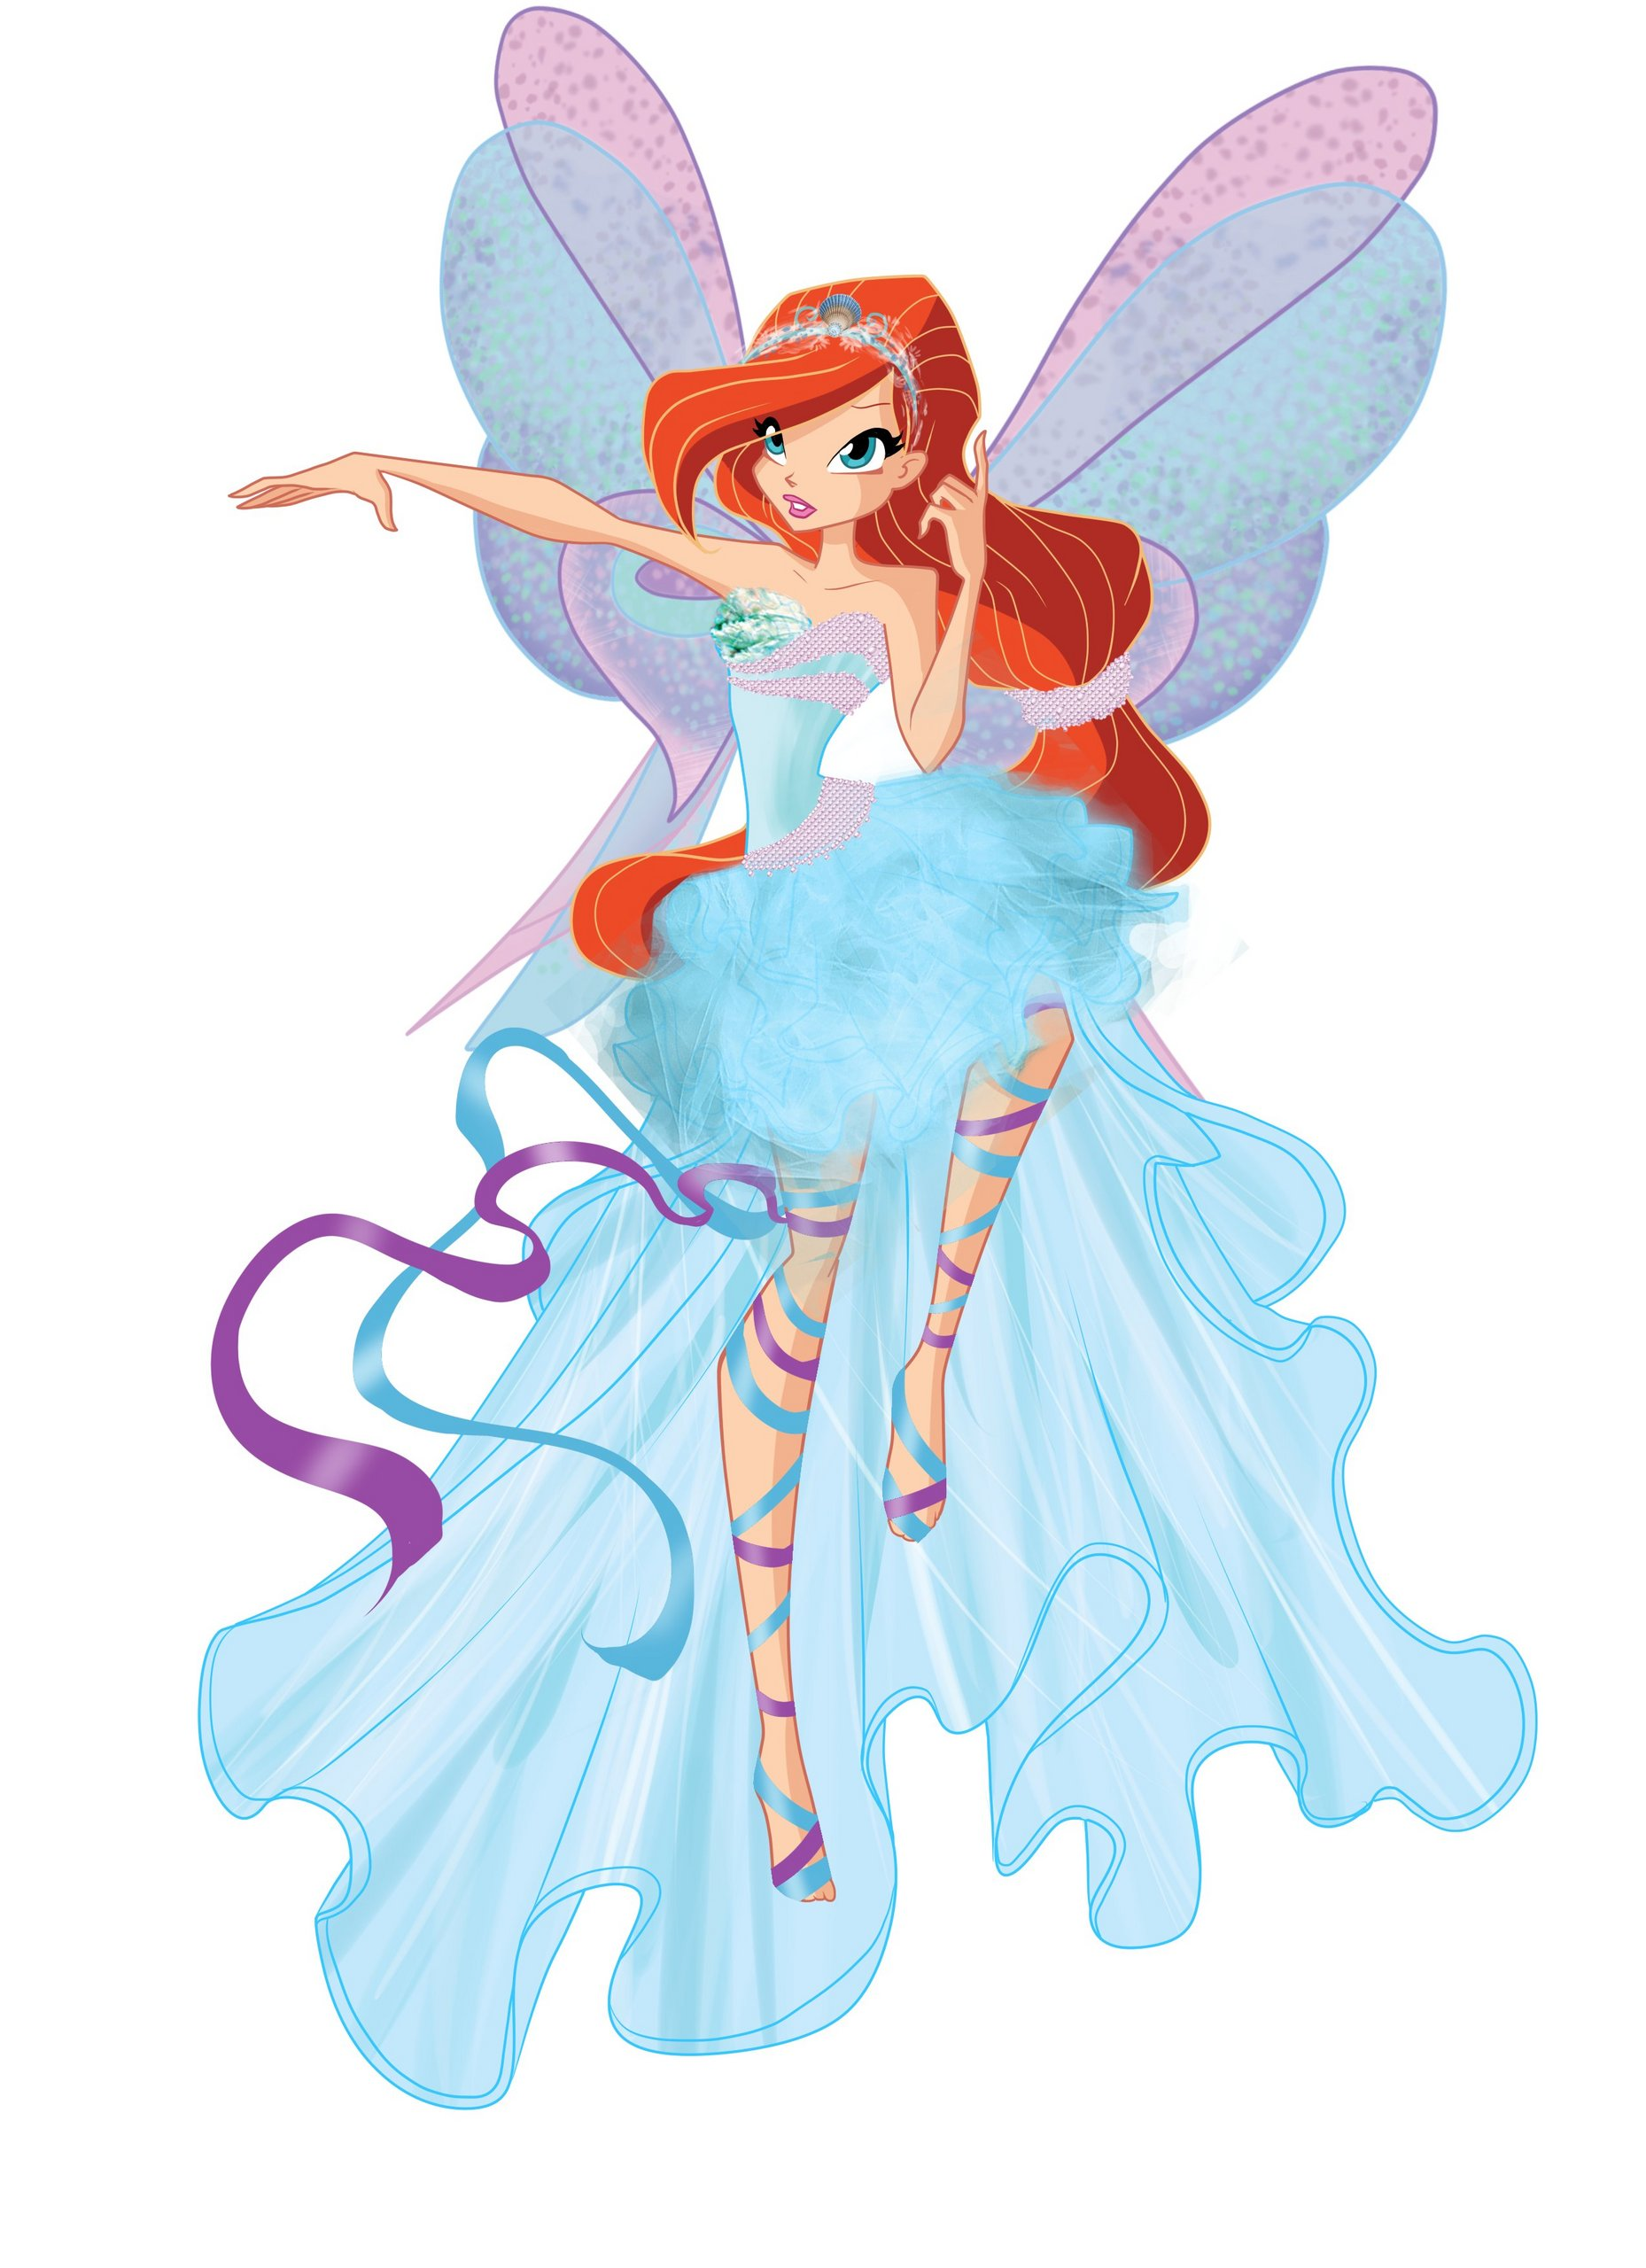 http://images5.fanpop.com/image/photos/25800000/winx-season-5-the-winx-club-25808839-1858-2560.jpg